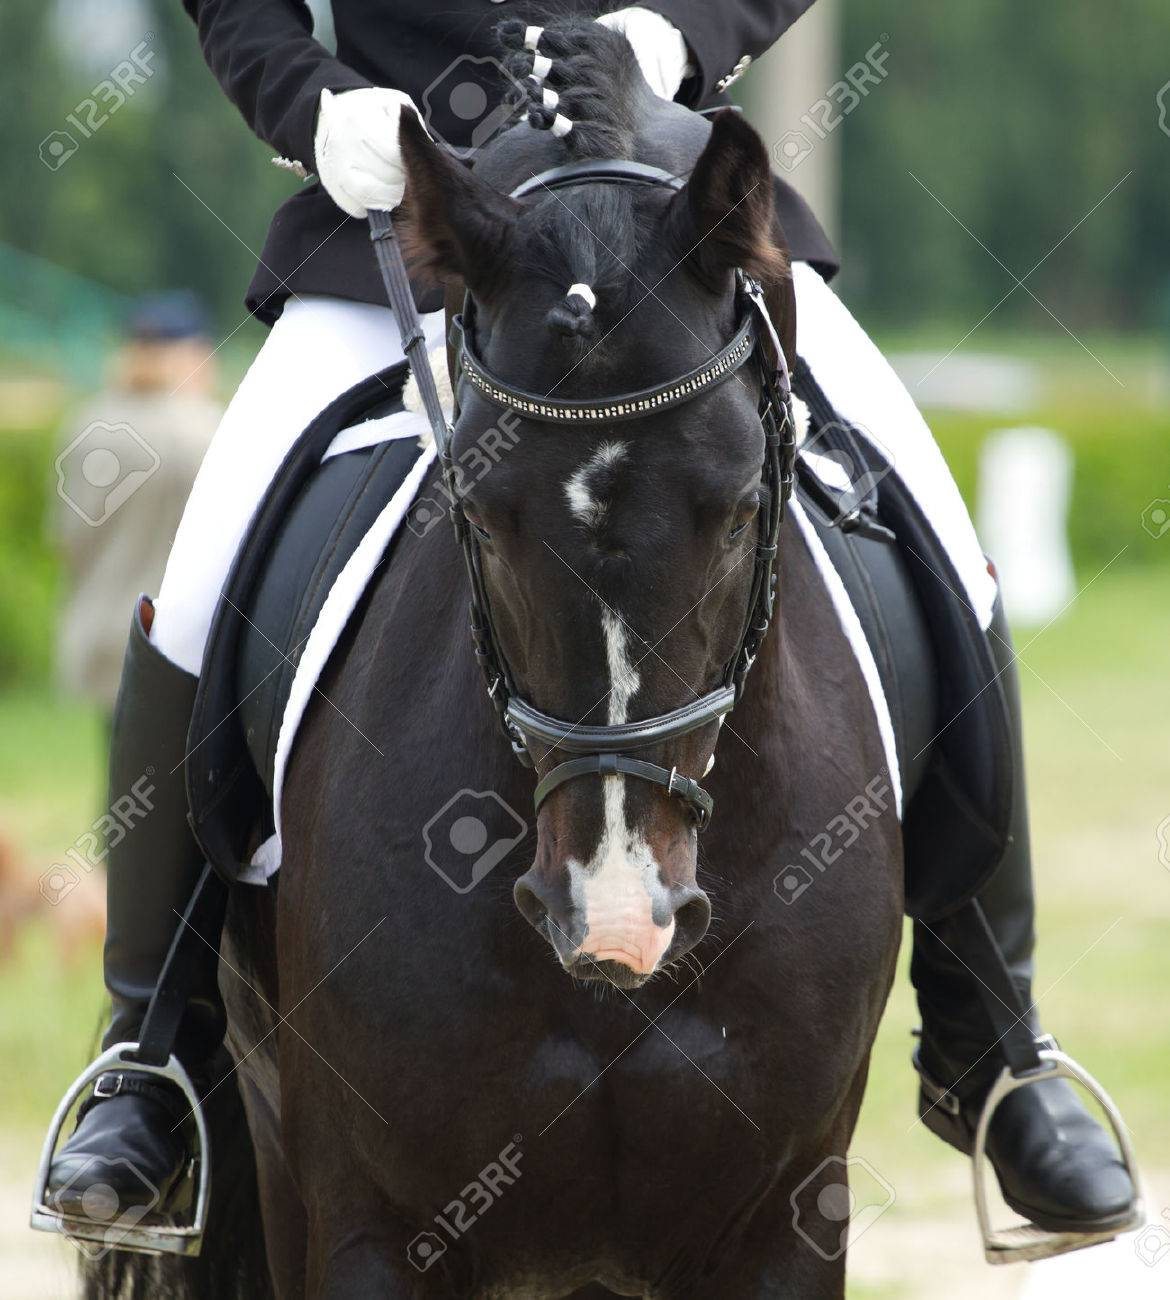 horse rider stock photos royalty free horse rider images